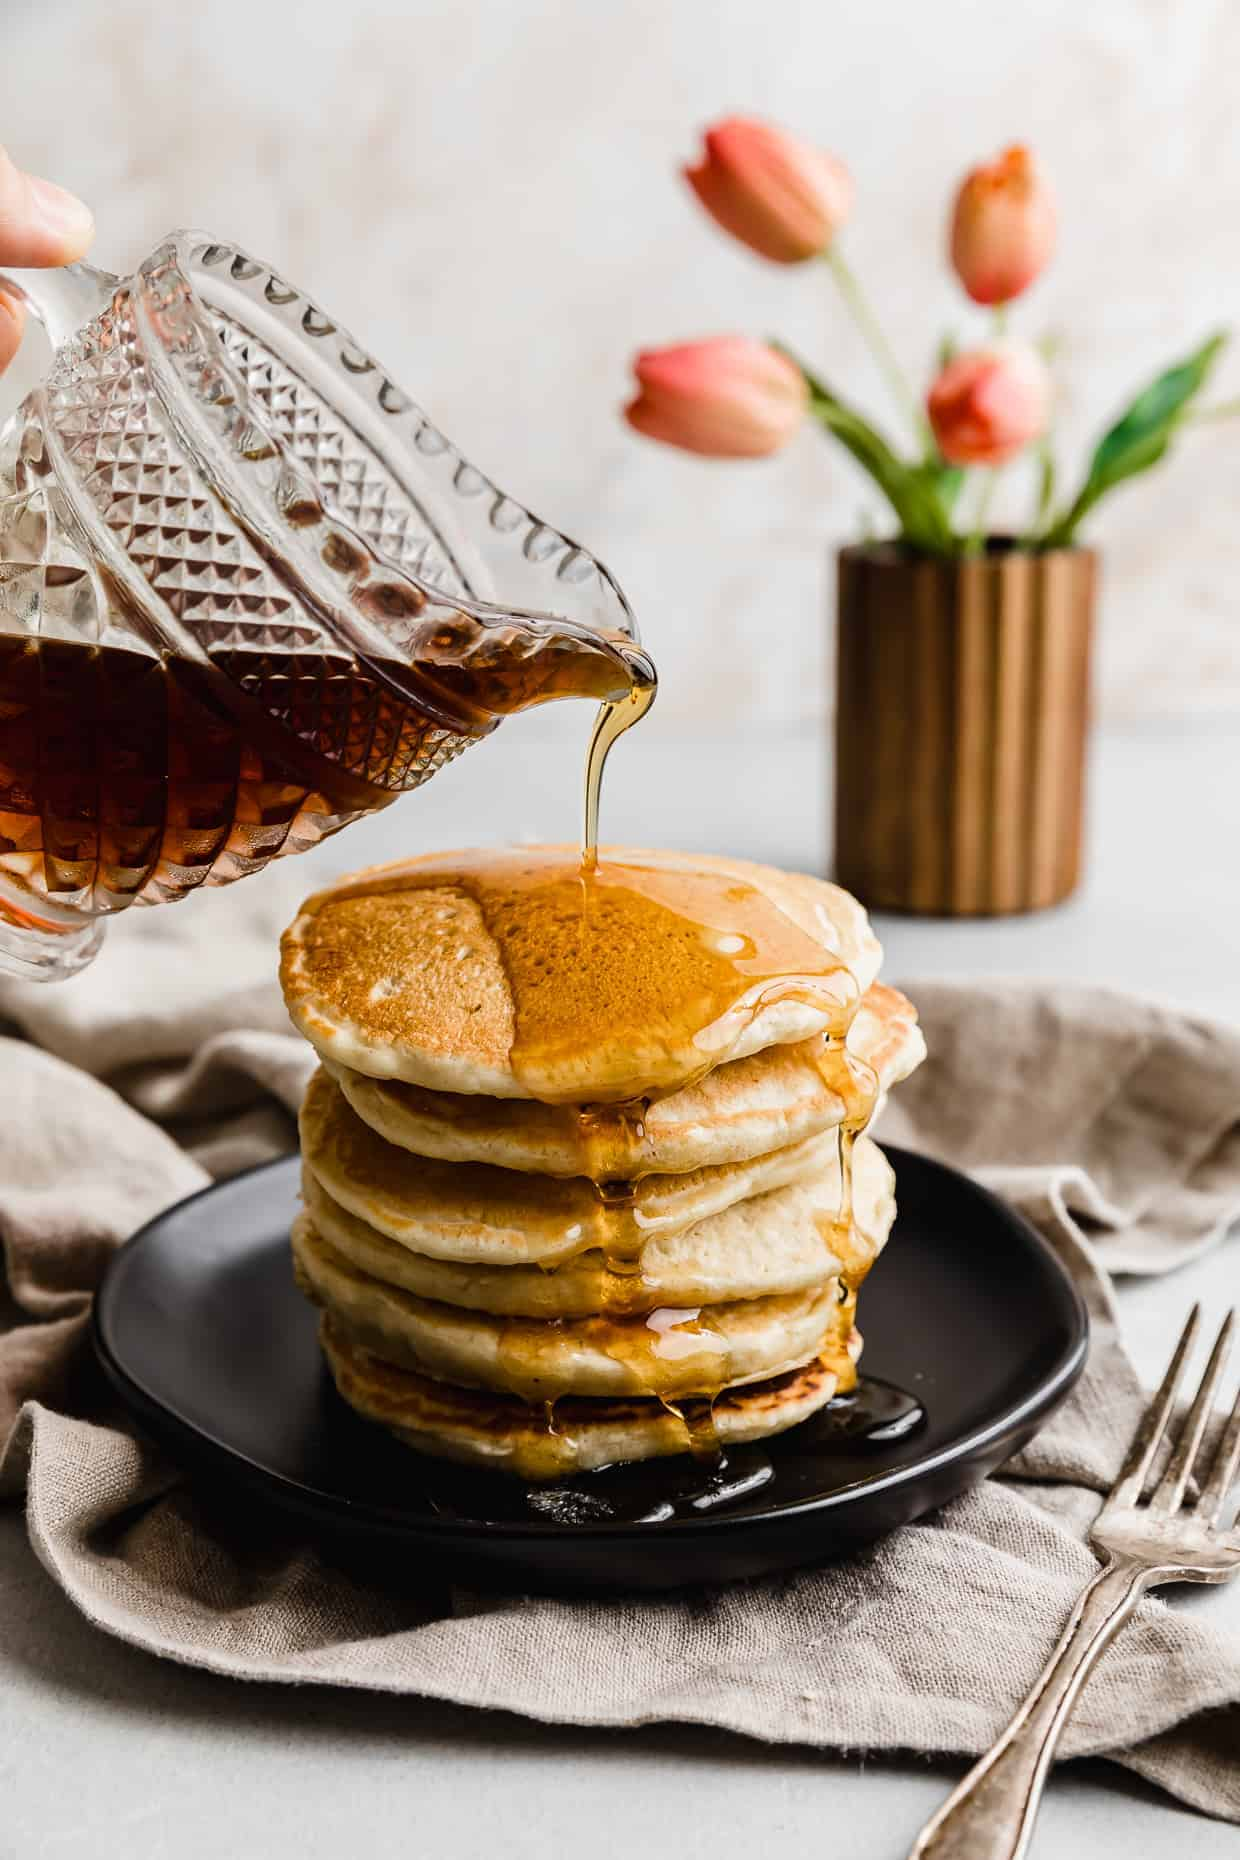 Maple syrup being poured overtop of Almond Milk Pancakes on a black plate.